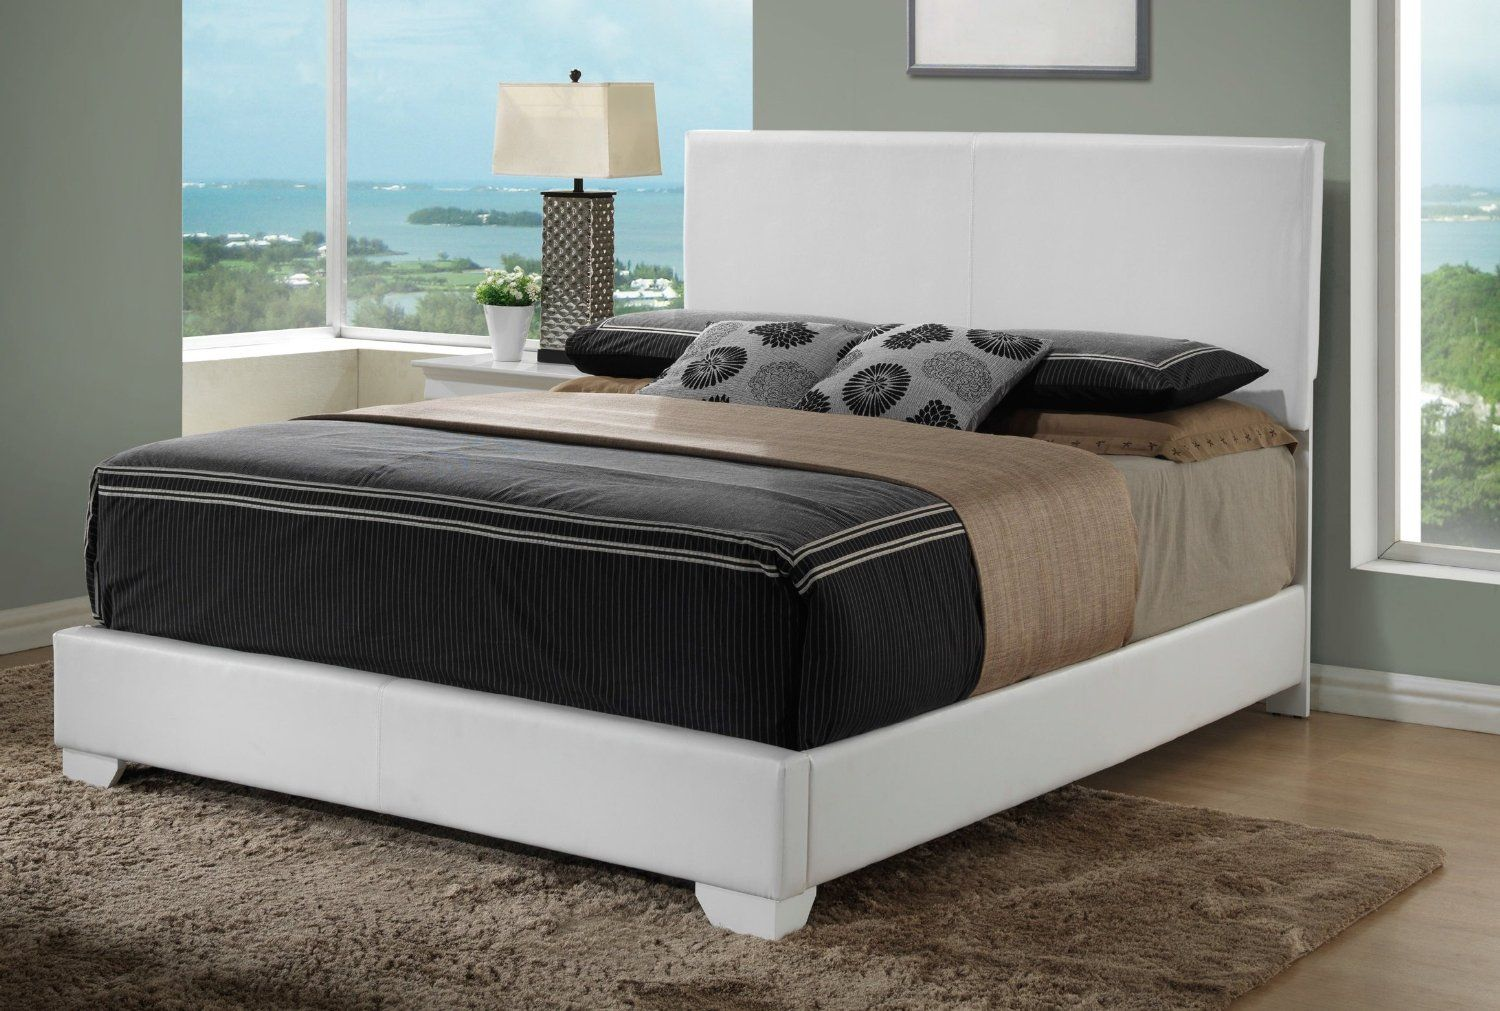 Bedroom modern white headboard and floating bed design solid black